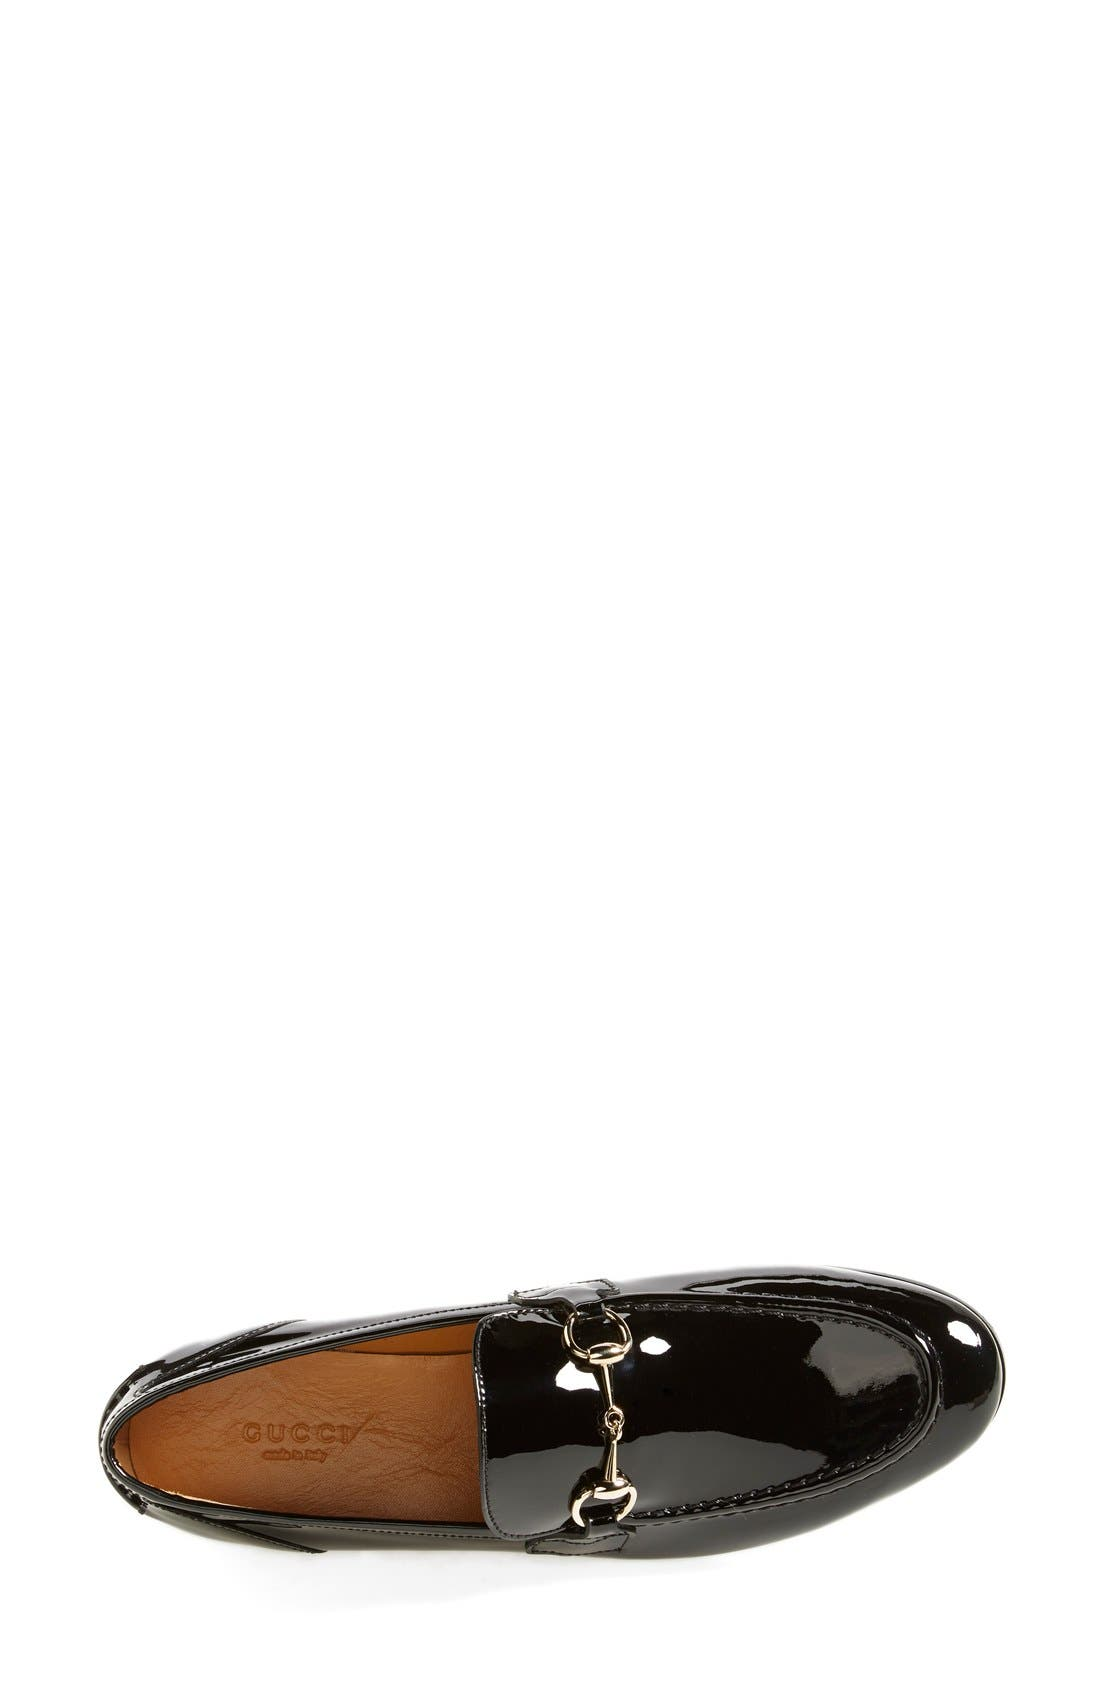 Alternate Image 3  - Gucci 'New Power' Patent Leather Loafer